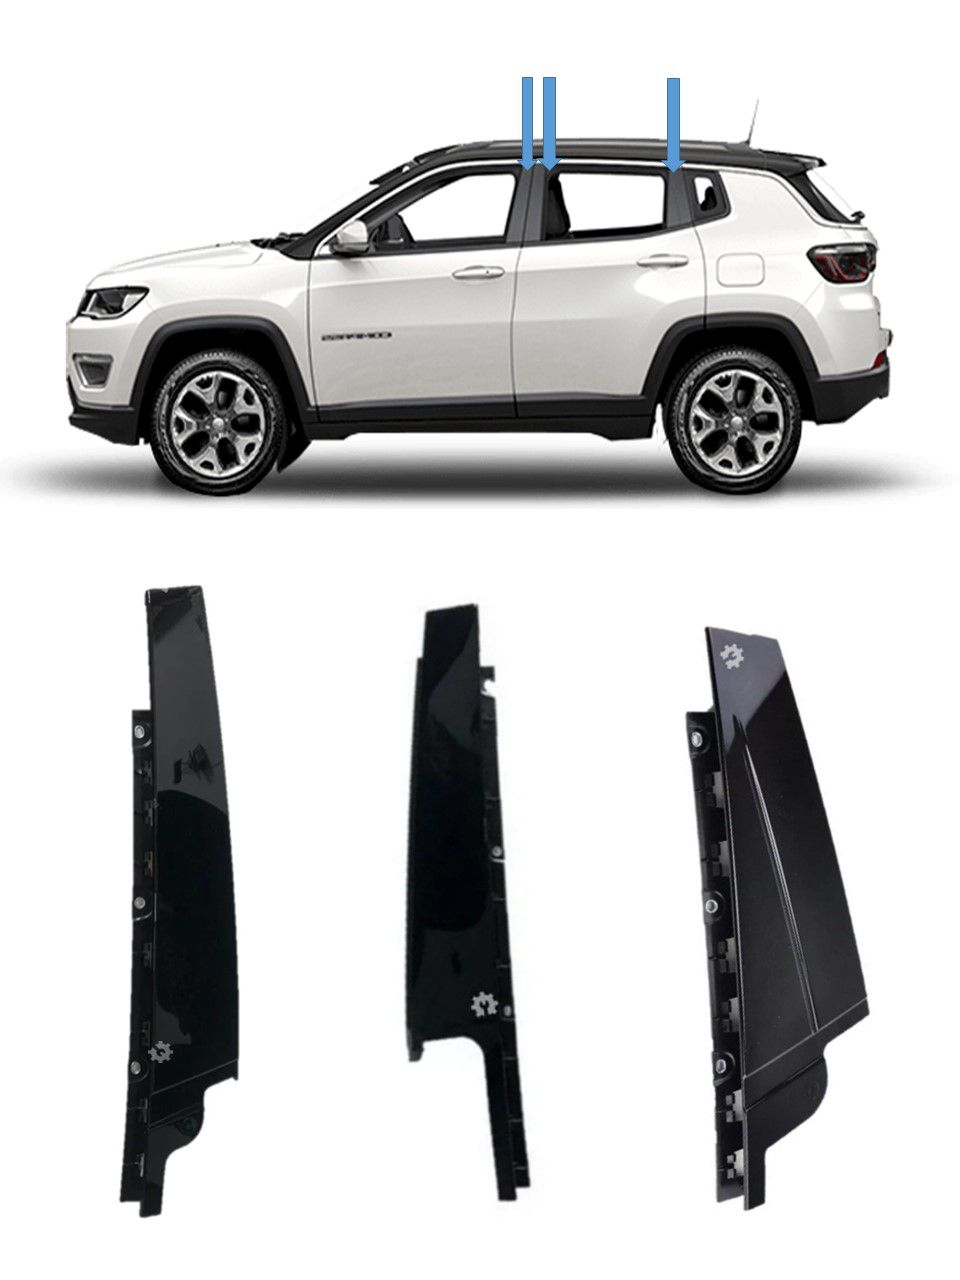 Kit Moldura Lateral Esquerda Porta Jeep Compass 17 19 Original